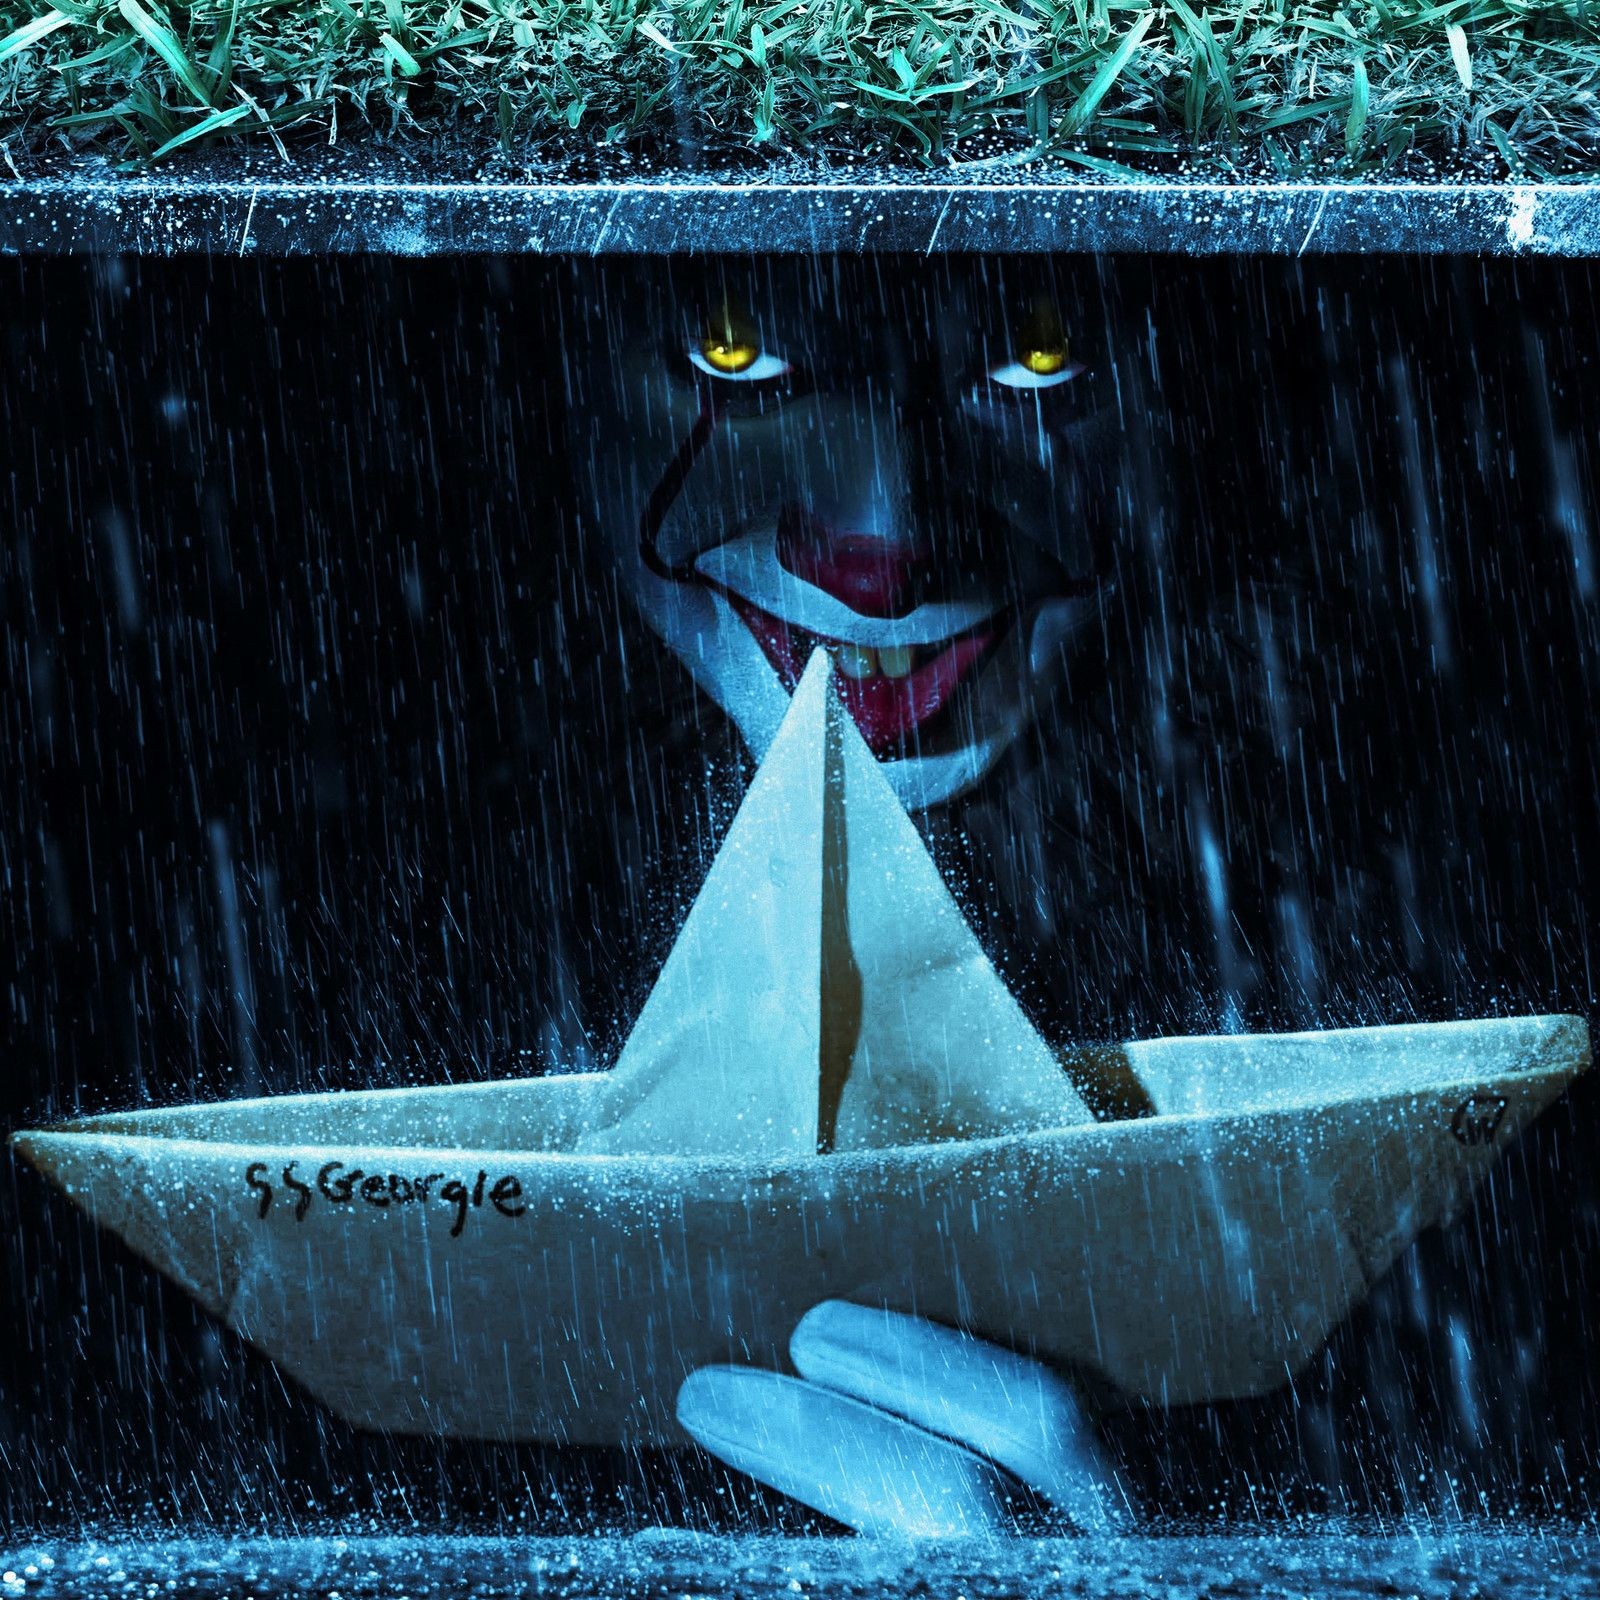 IT 2017 - Pennywise in sewer, William Gray